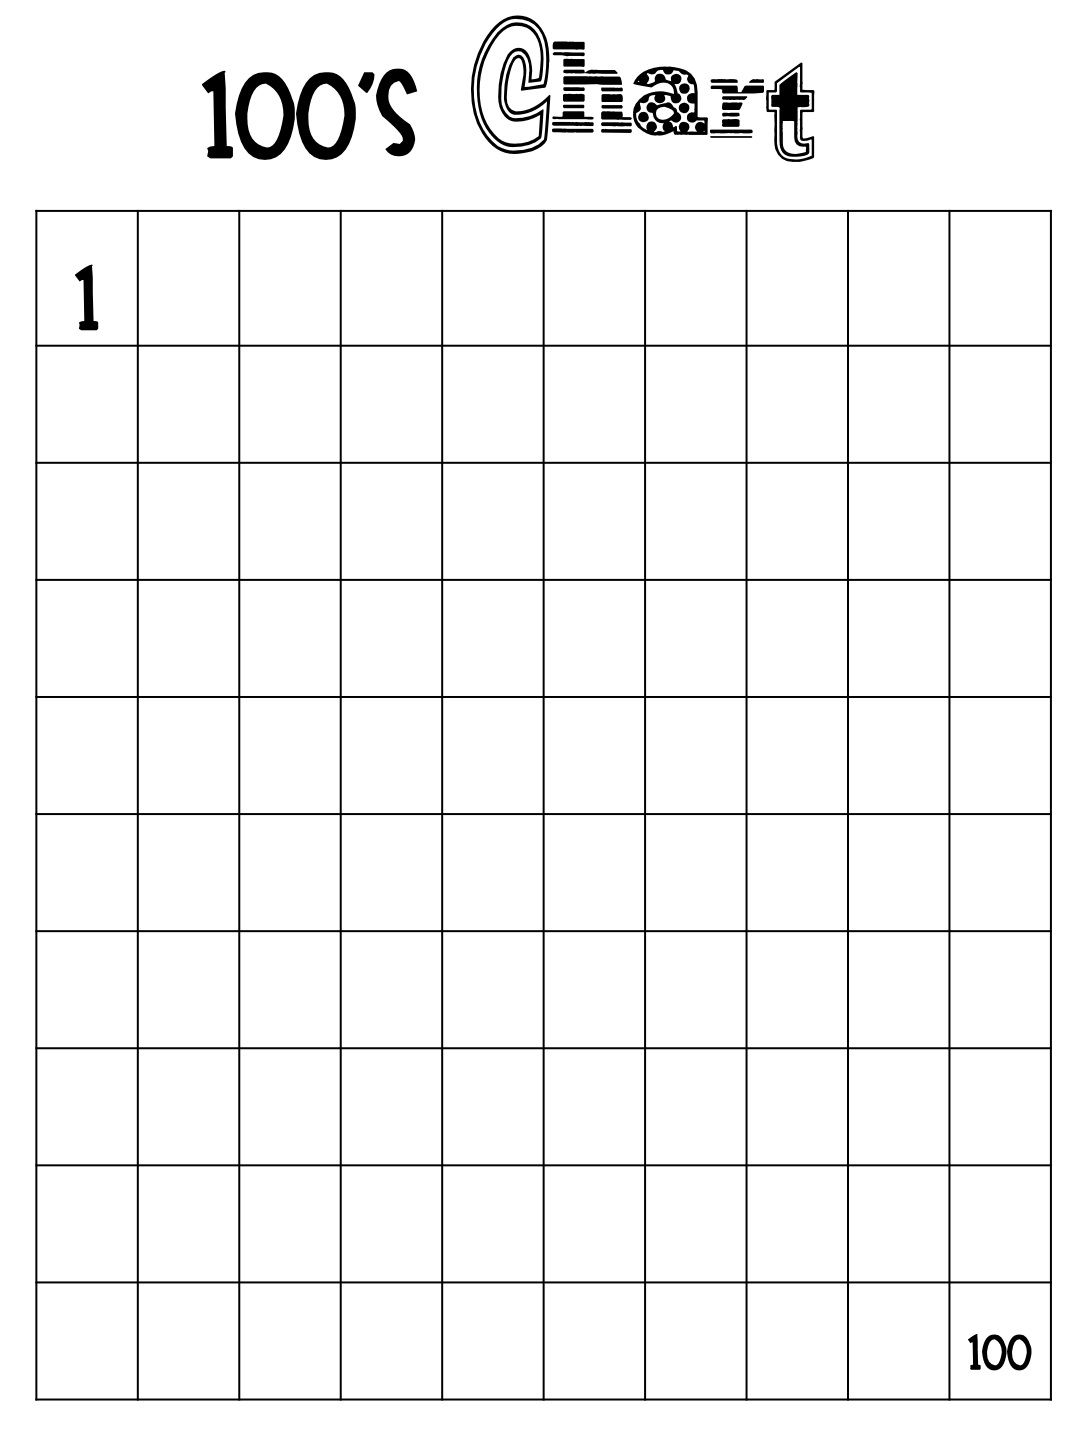 It's just an image of Printable Blank Hundreds Chart throughout counting